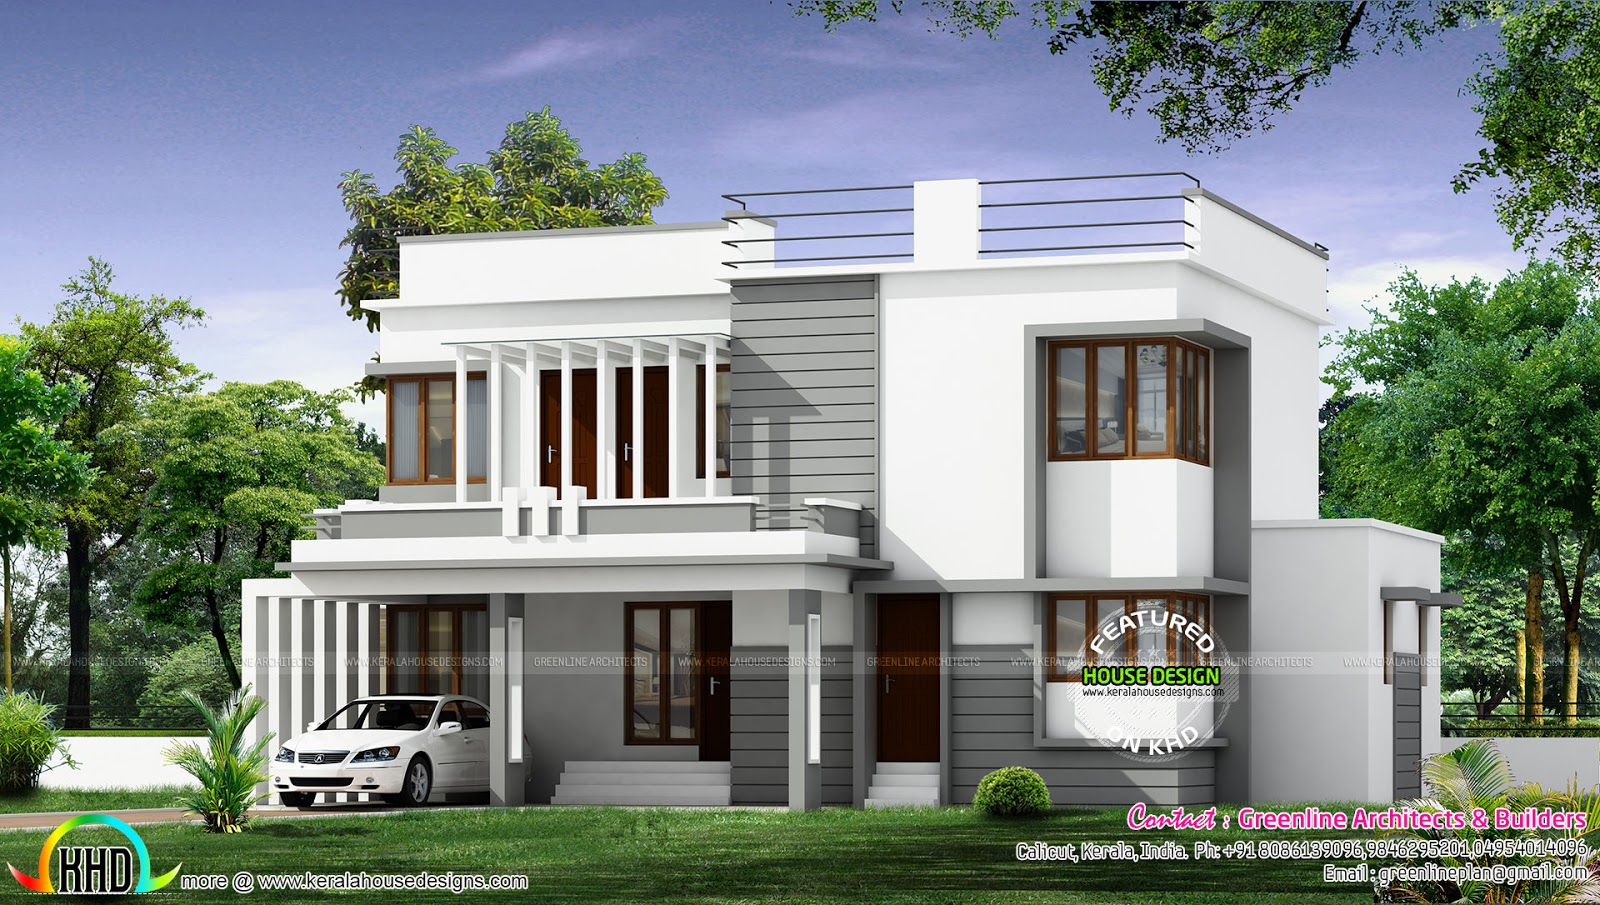 New modern house architecture kerala home design and for New style house